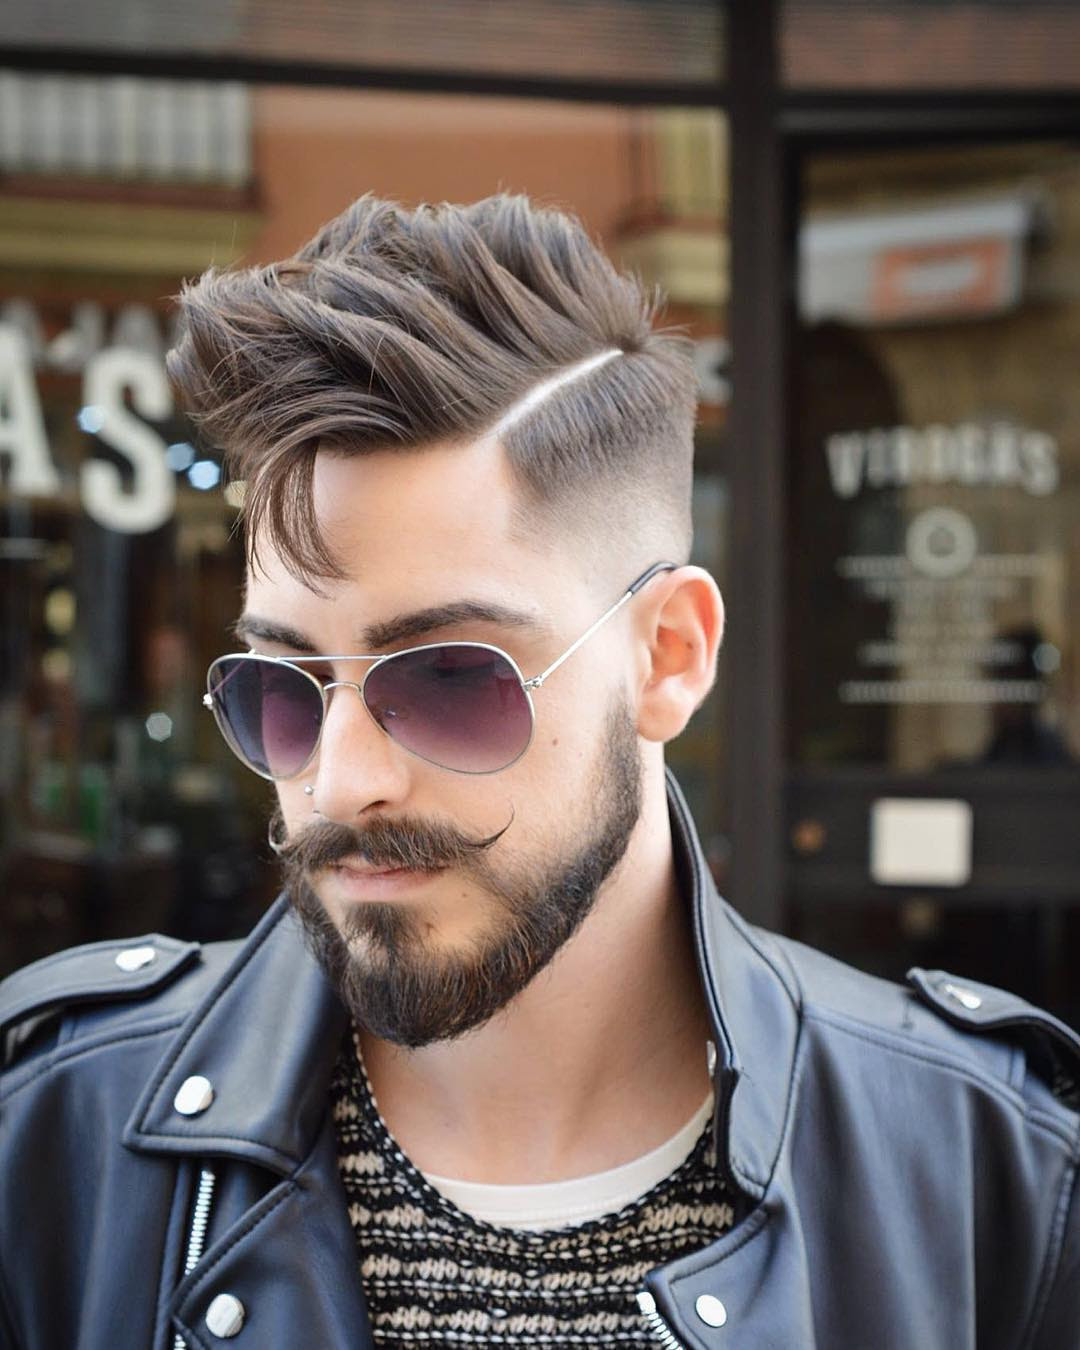 New Hairstyle Design Gents Newhairstyle2019